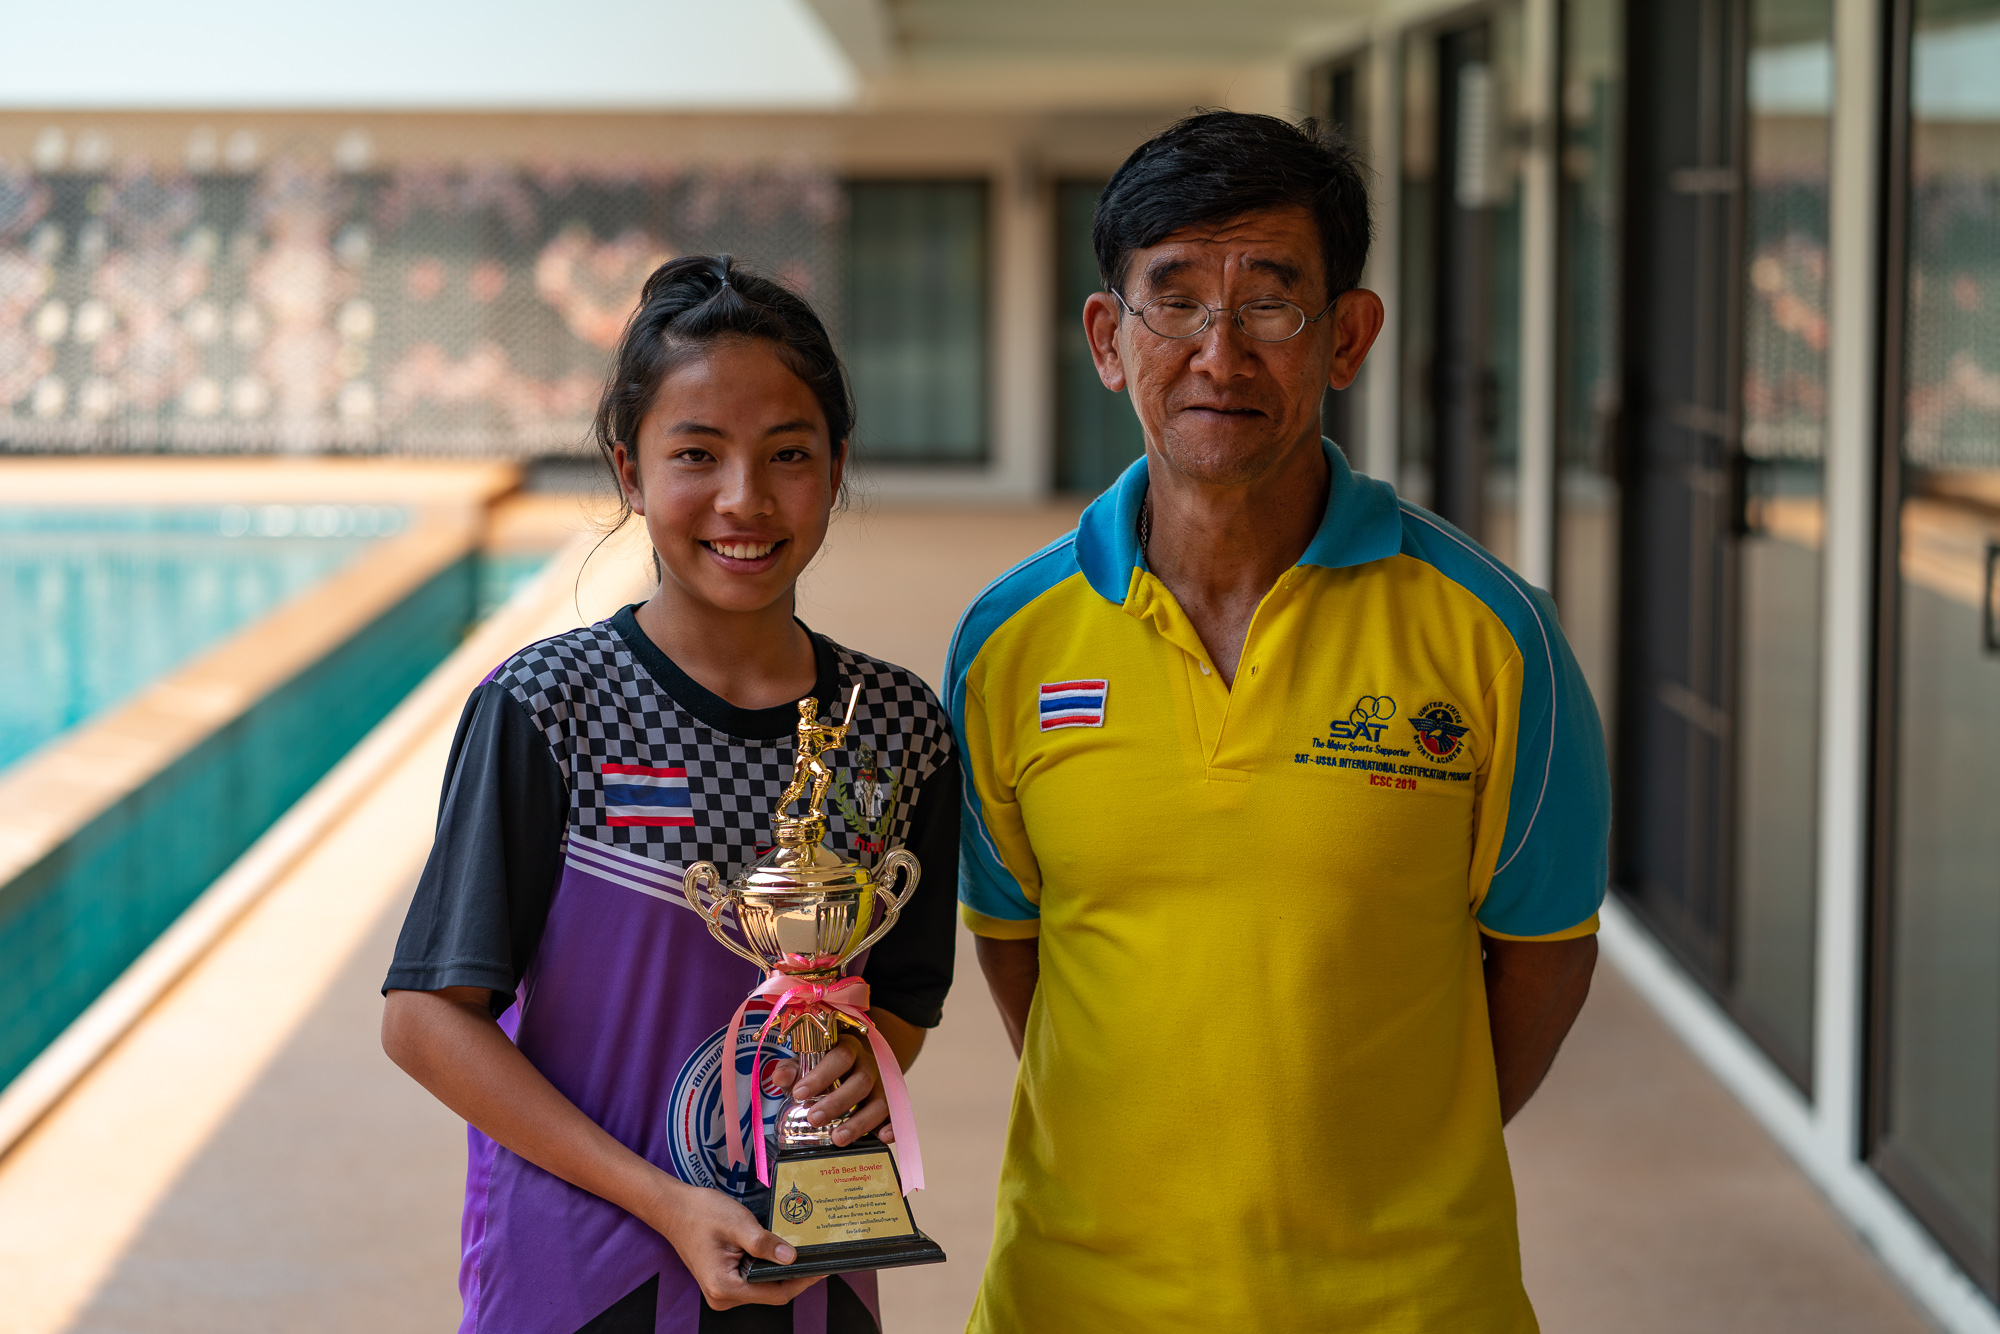 This young woman, pictured here with her coach, lives at our Doi Saket 1c home in Thailand, and is currently the best female bowler in her age group — in the world!